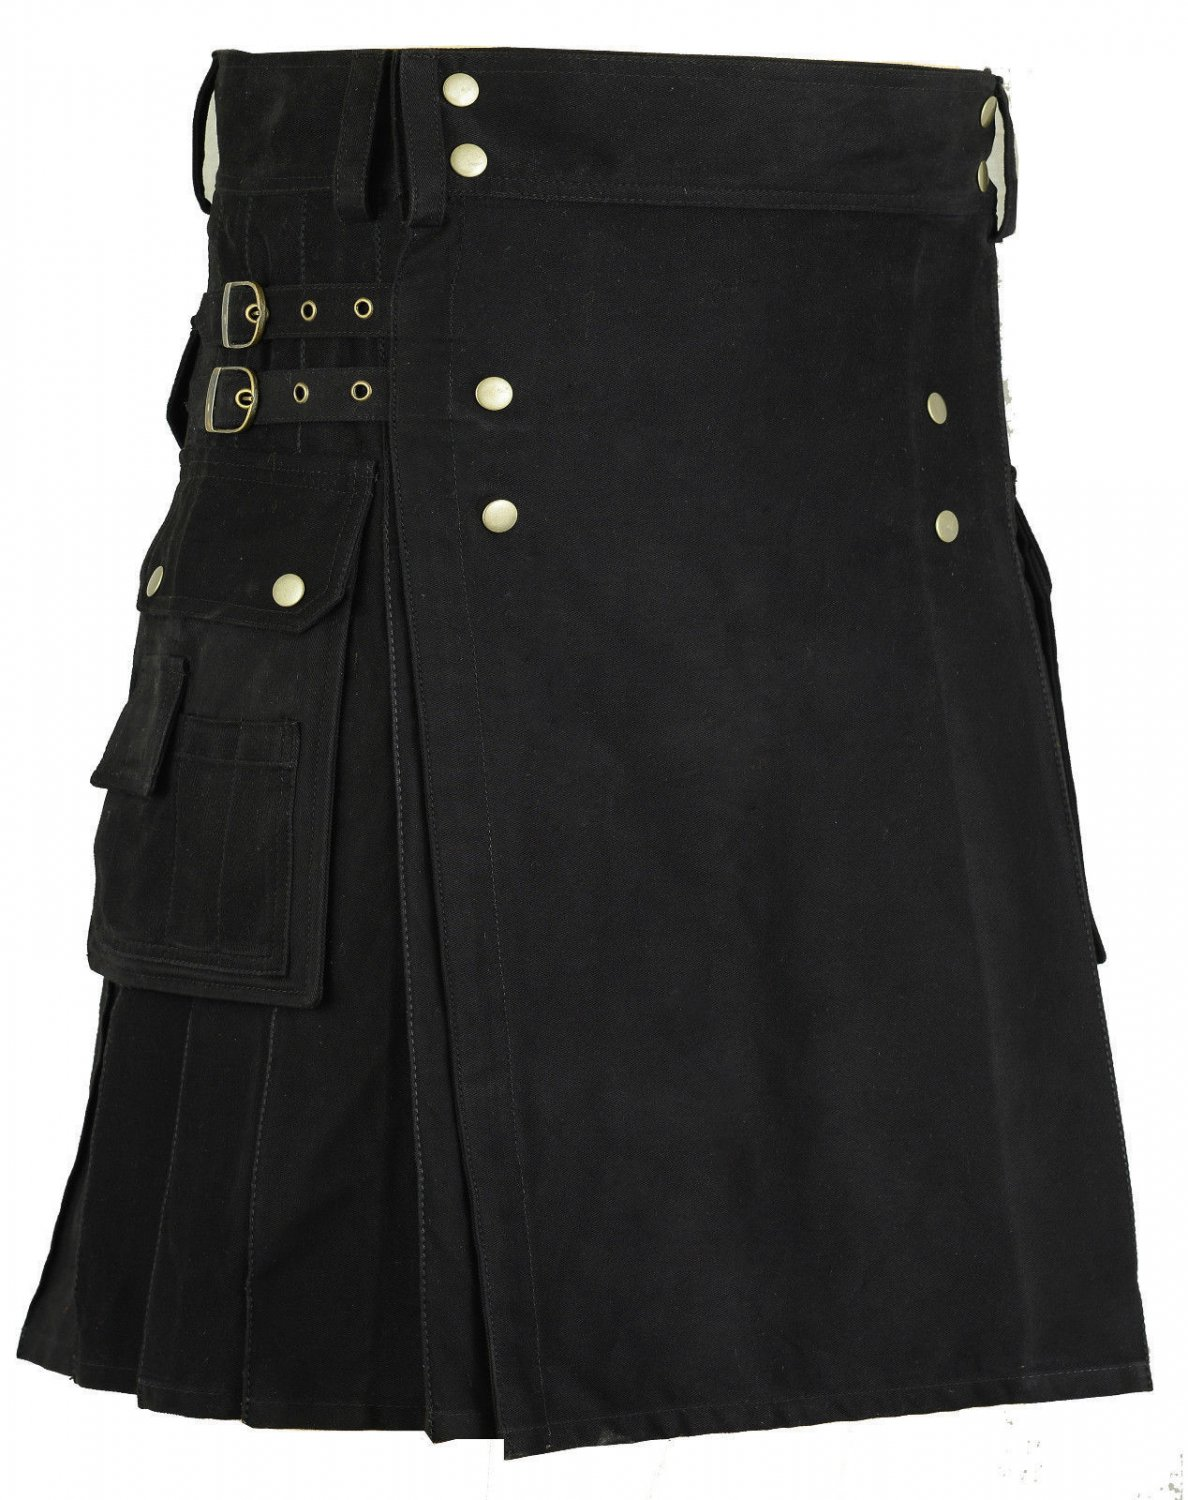 Gothic Black Cotton Outdoor Kilt for Men 50 Size Utility Kilt with Brass Material